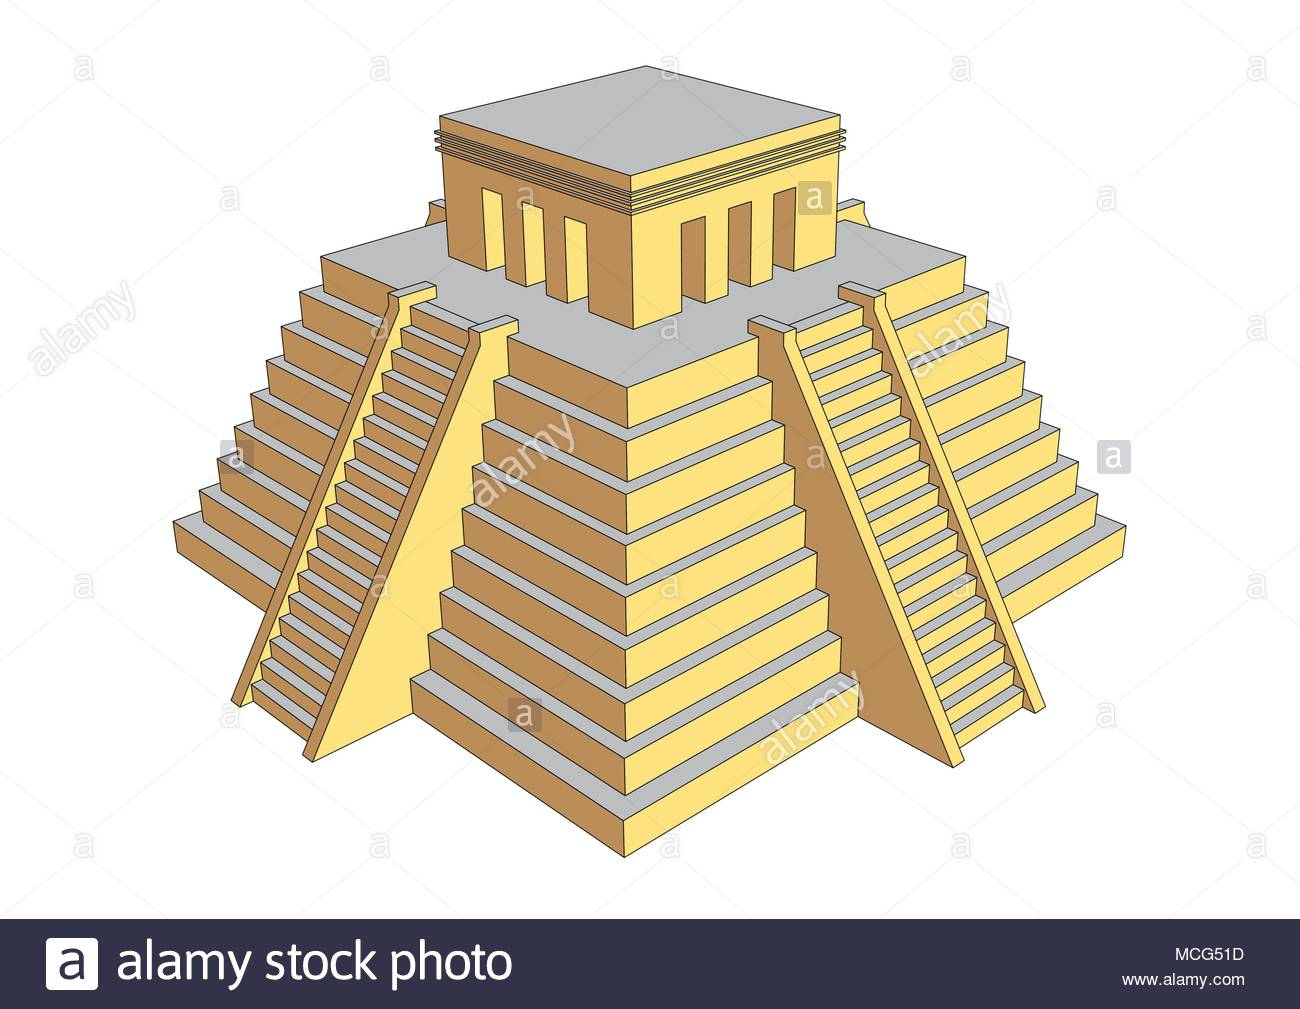 Pyramid illustration resembling mayan or aztec style. Mesoamerican religious building where human sacrifices was offered to gods Stock Vector